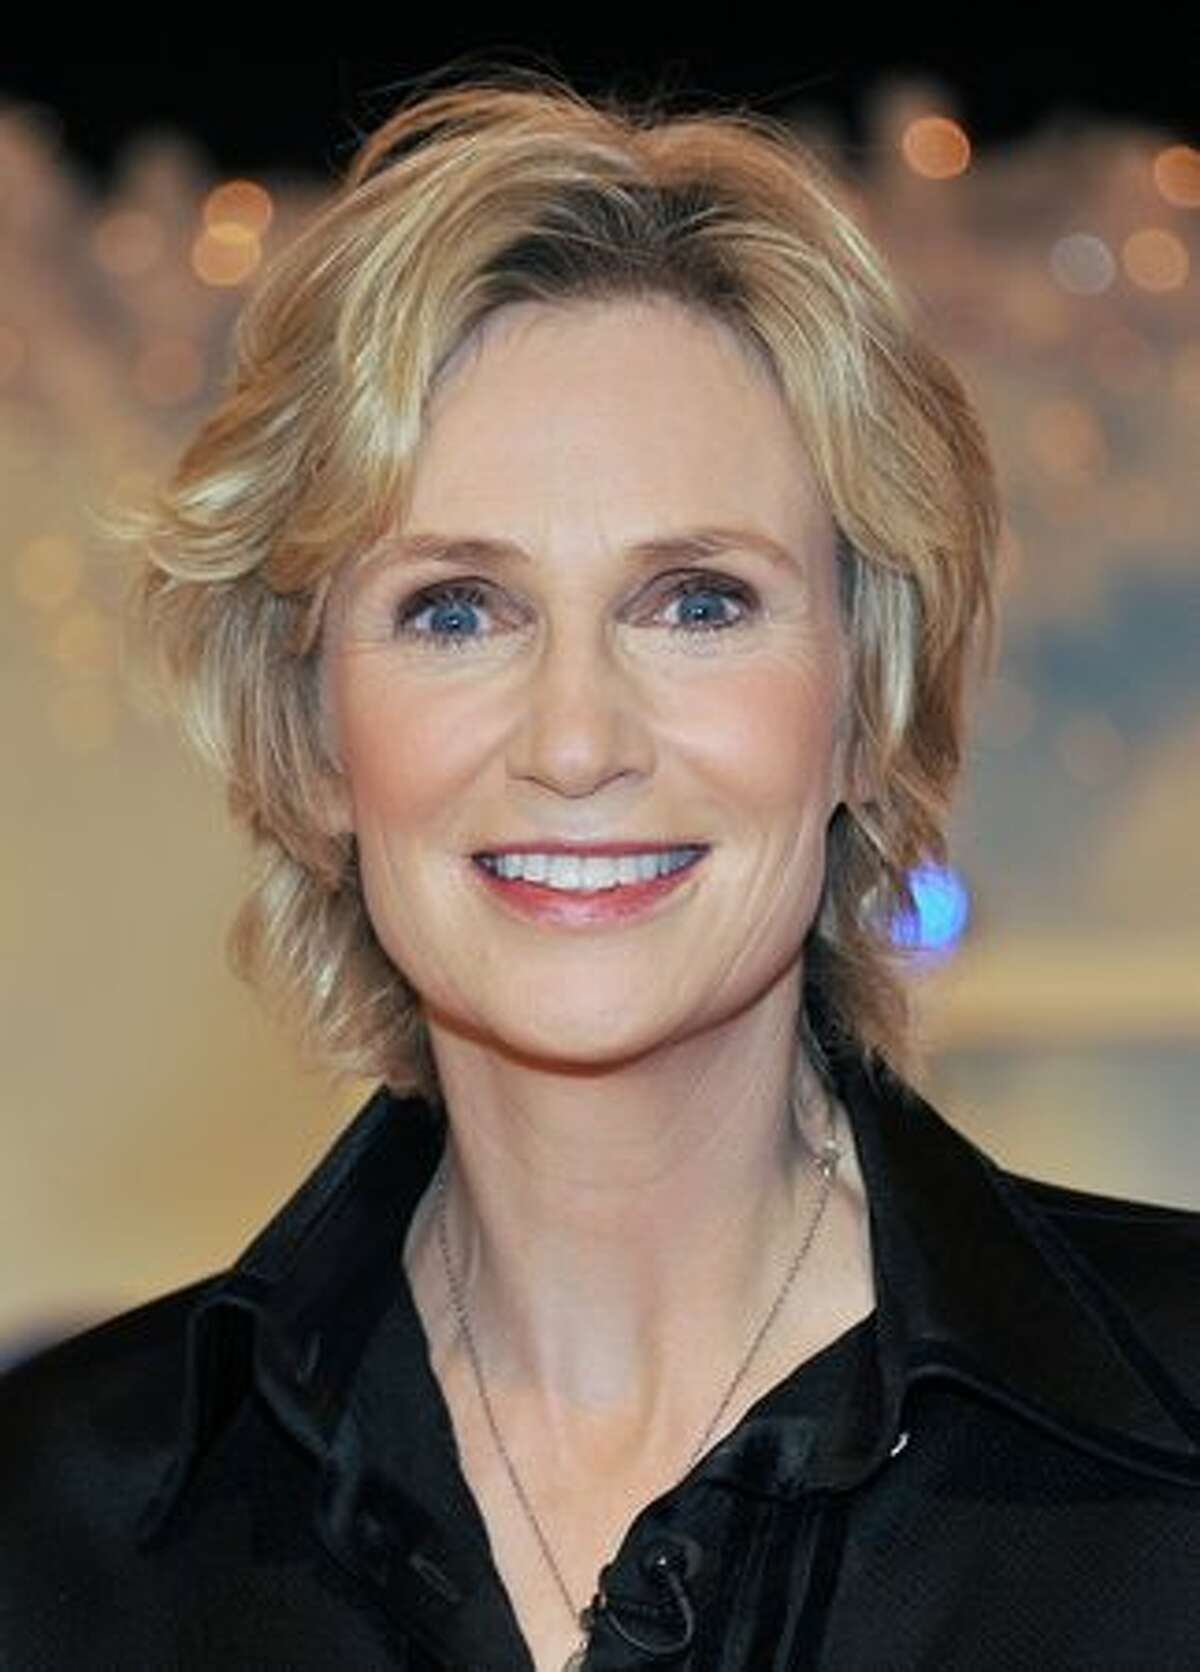 Actress Jane Lynch attends the 2010 Charmin Go Nation Throne Coronation at 142 West 42nd Street in New York City.